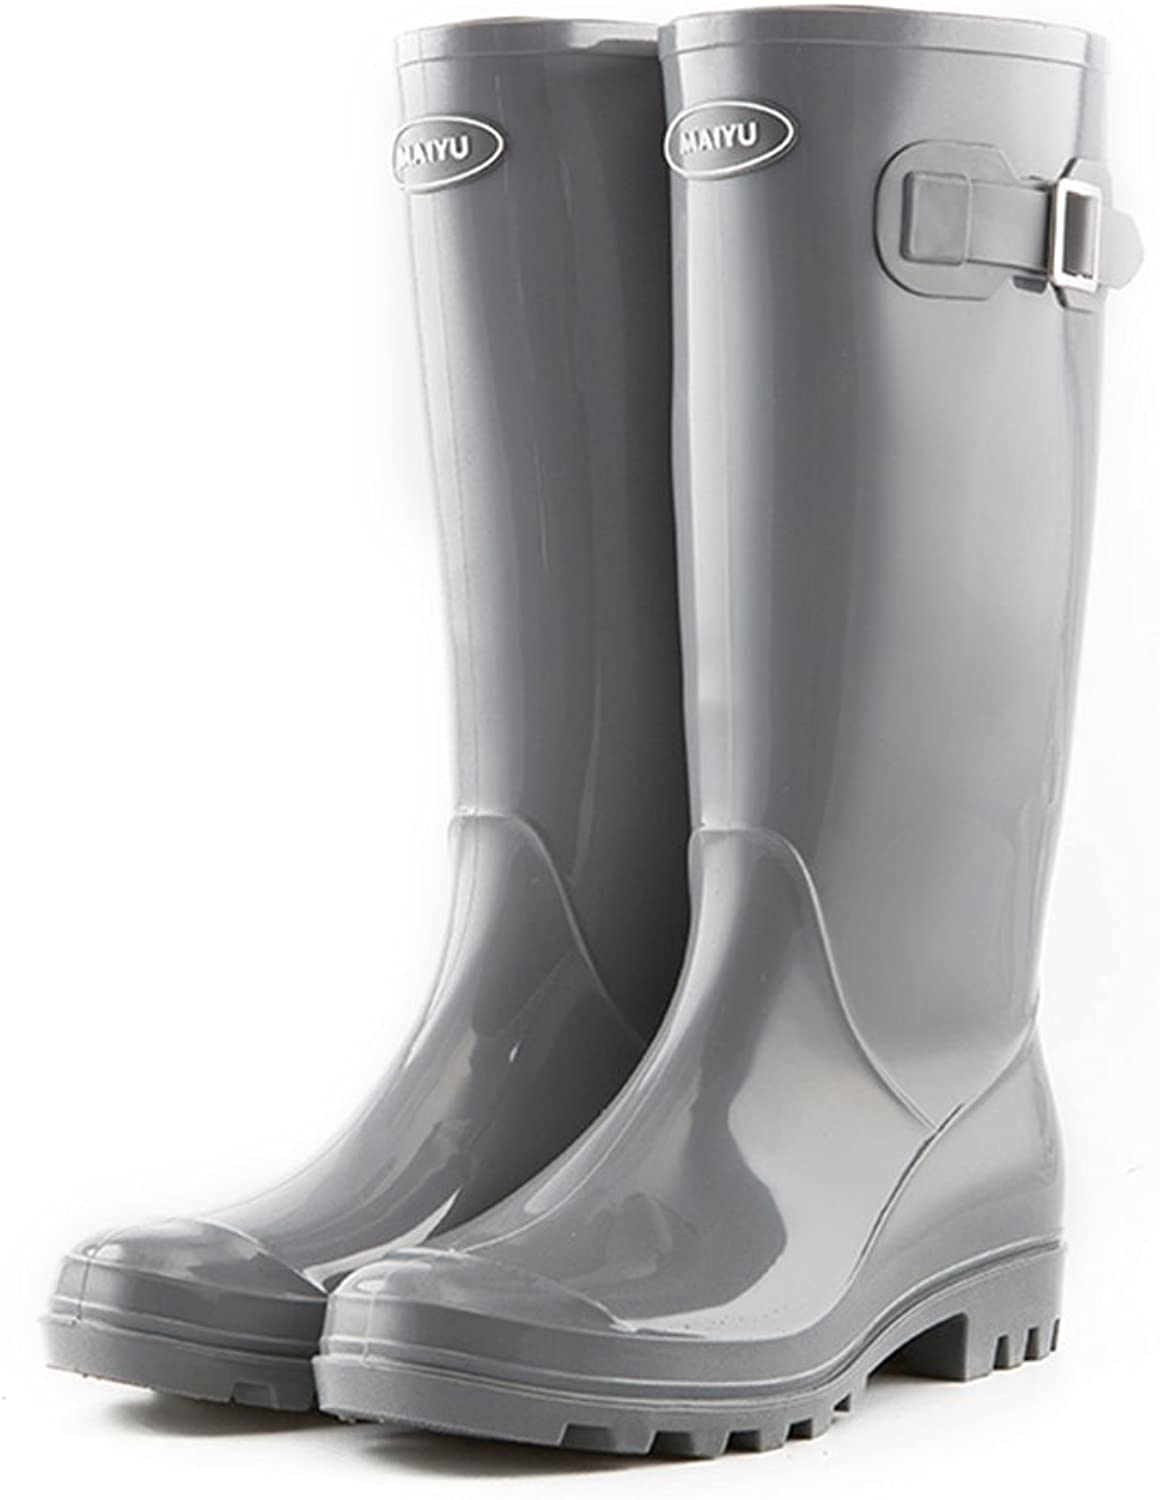 WENNEW PVC Anti-skidding Safety with Face Buckle Rain shoes for Womens Girls, Raincoat Rain Boots